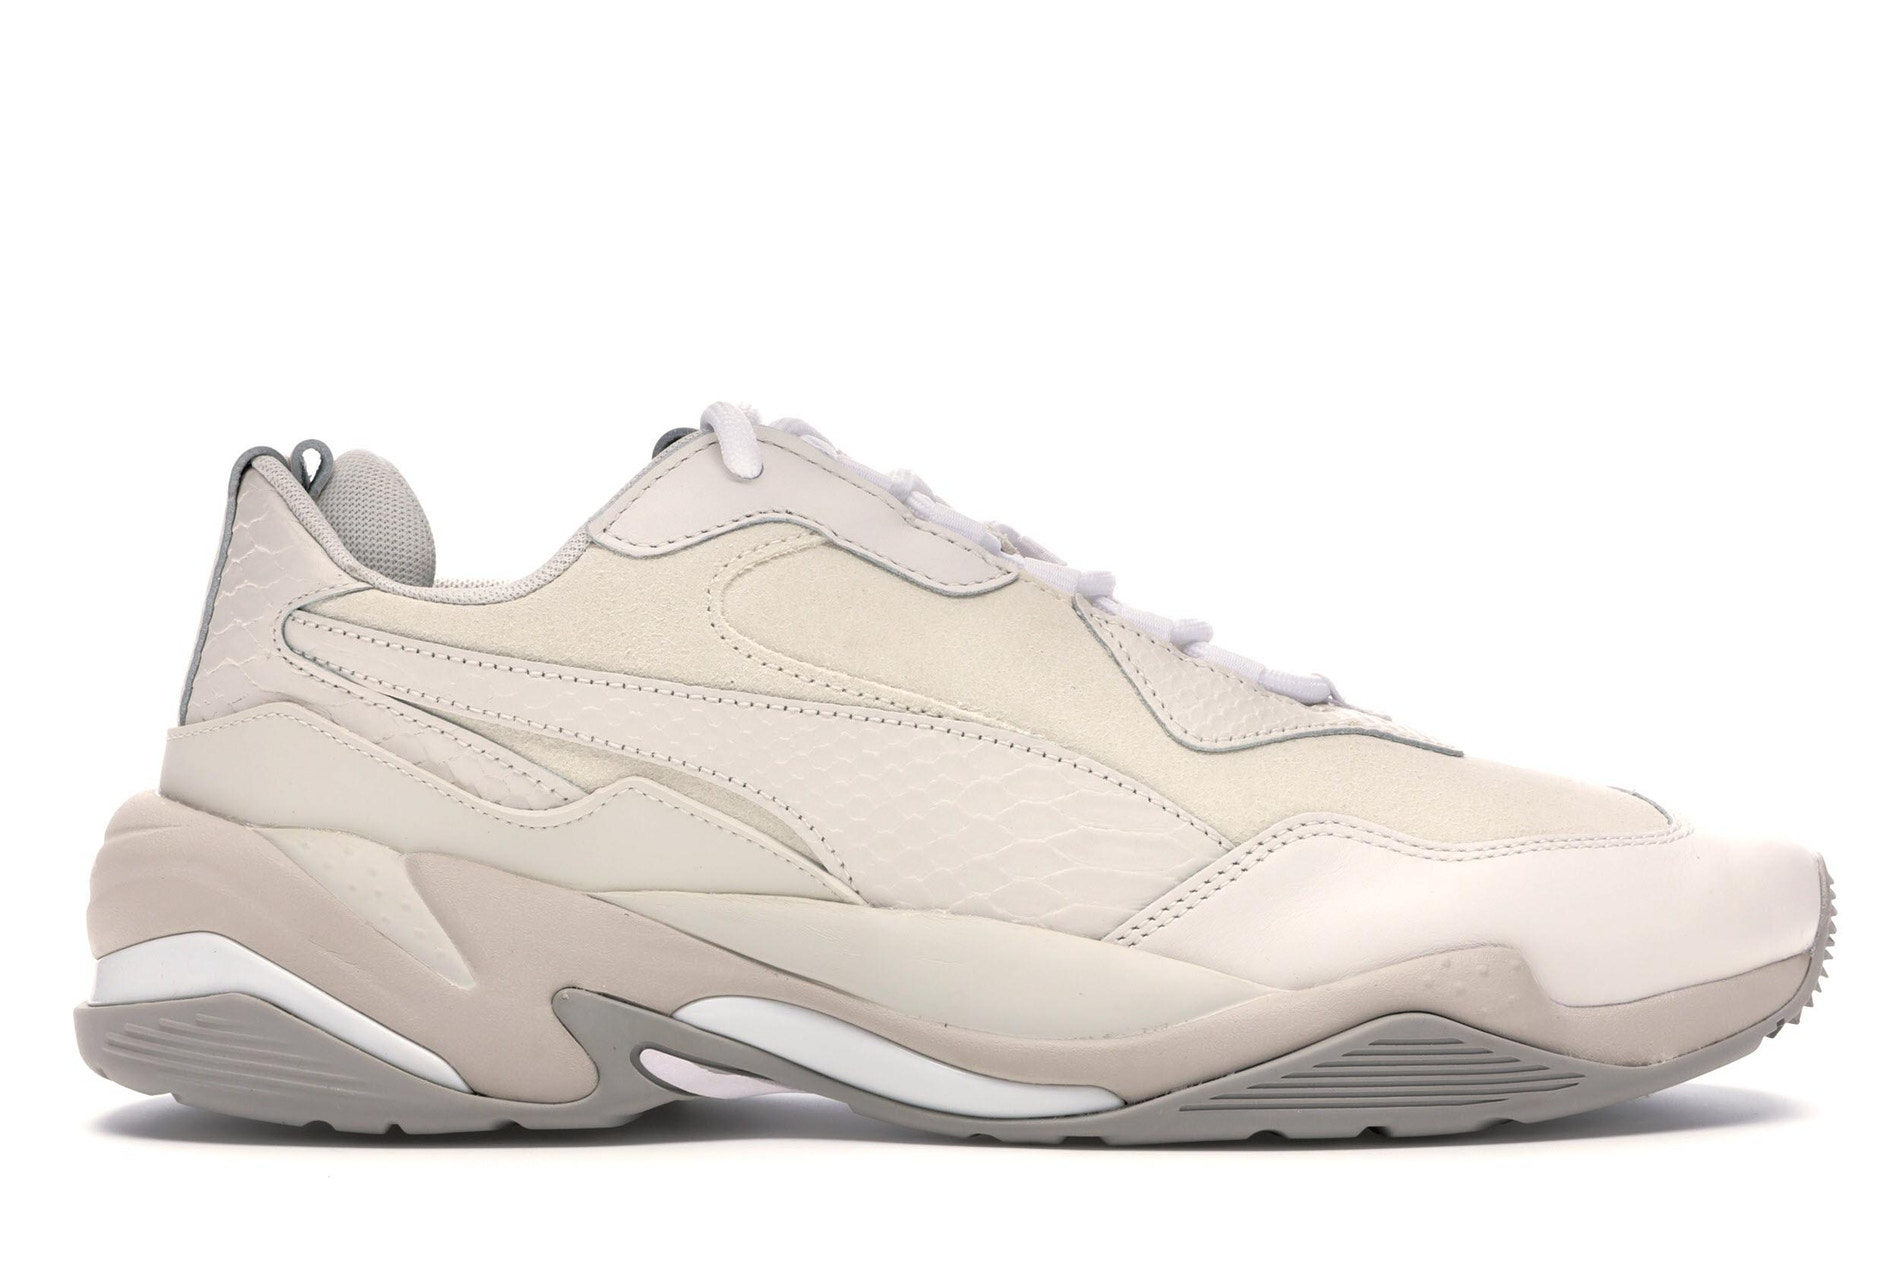 Puma Thunder Desert Bright White